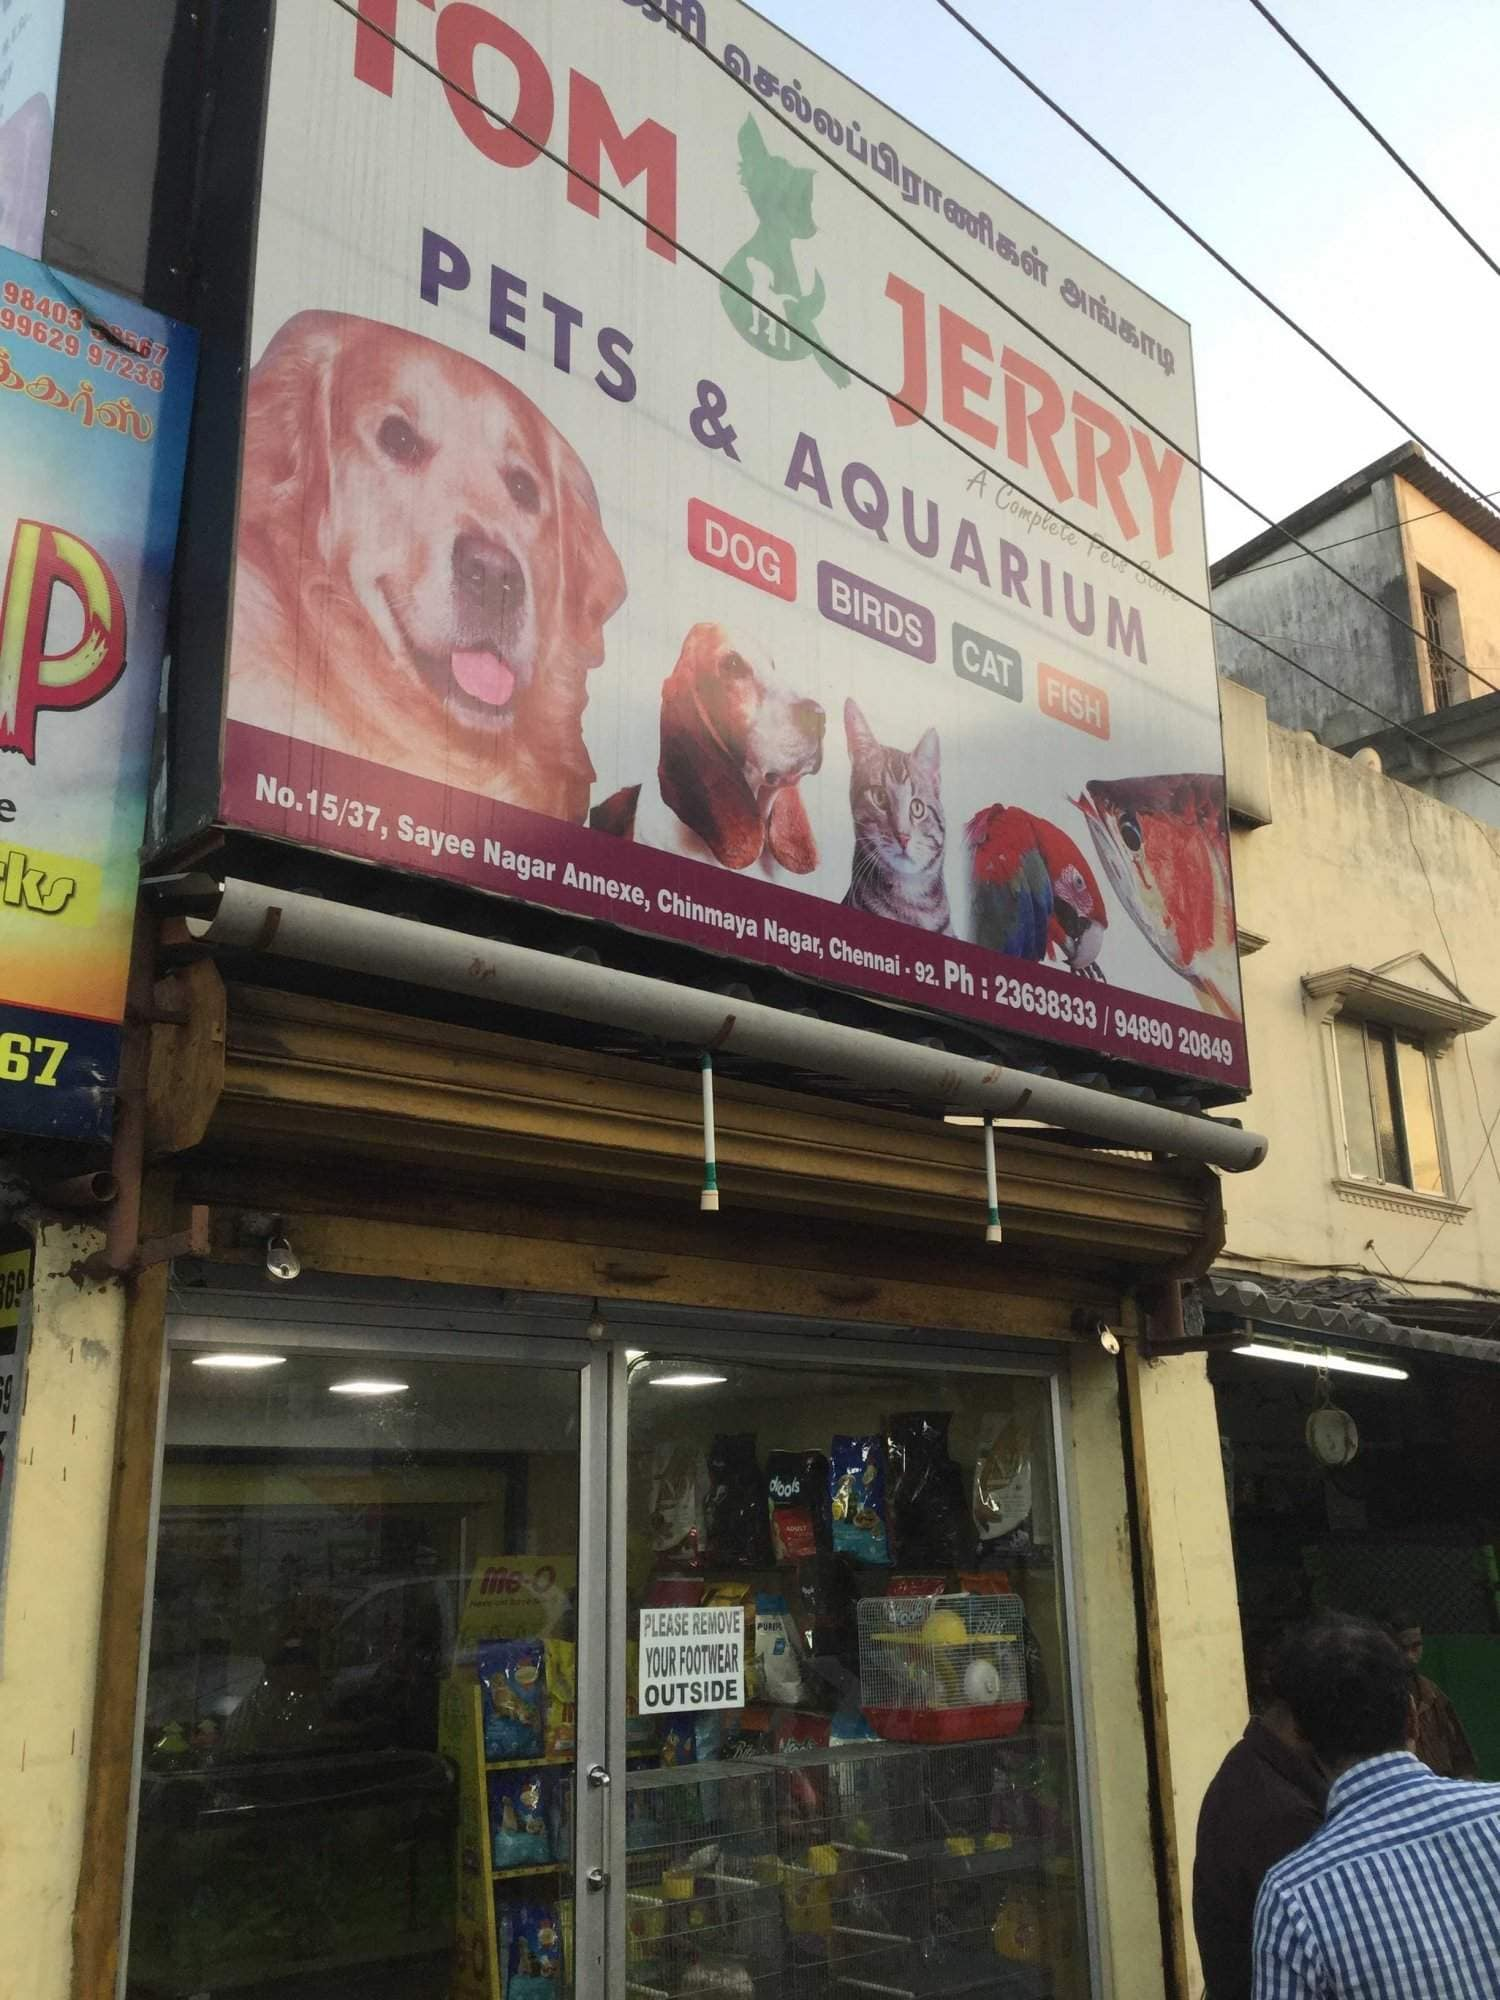 Top Pet Shops For Dog in Vadapalani - Best Pet Store - Justdial